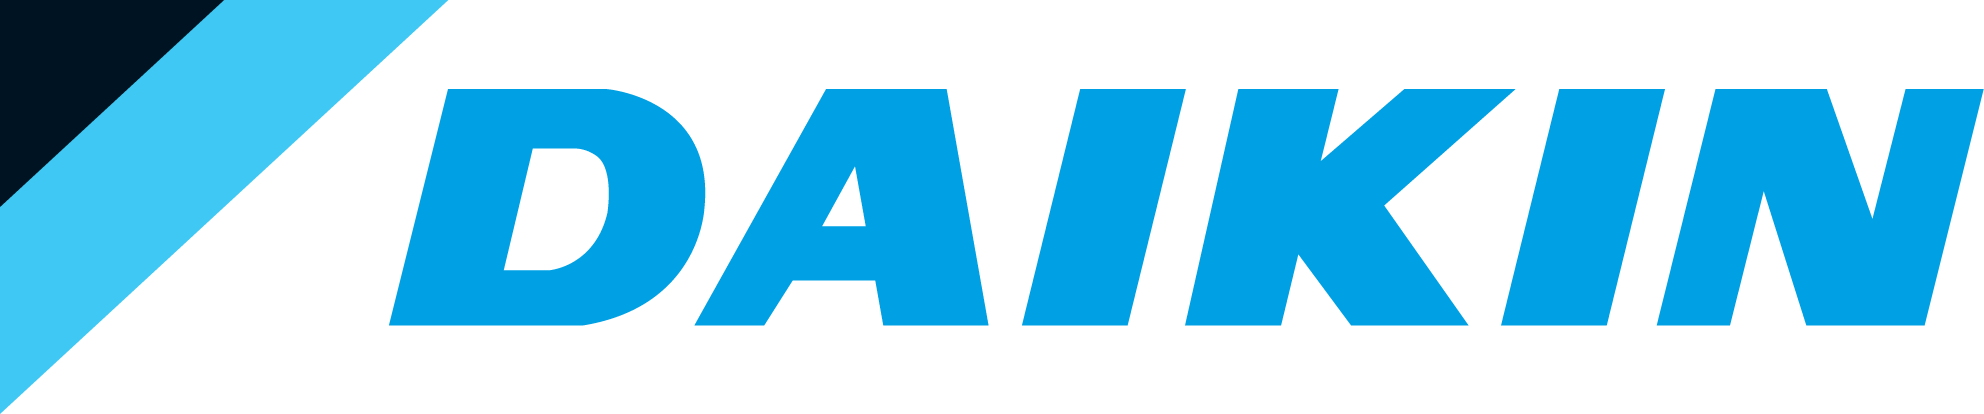 corporate_horizontal_logo_-_3_colours.png